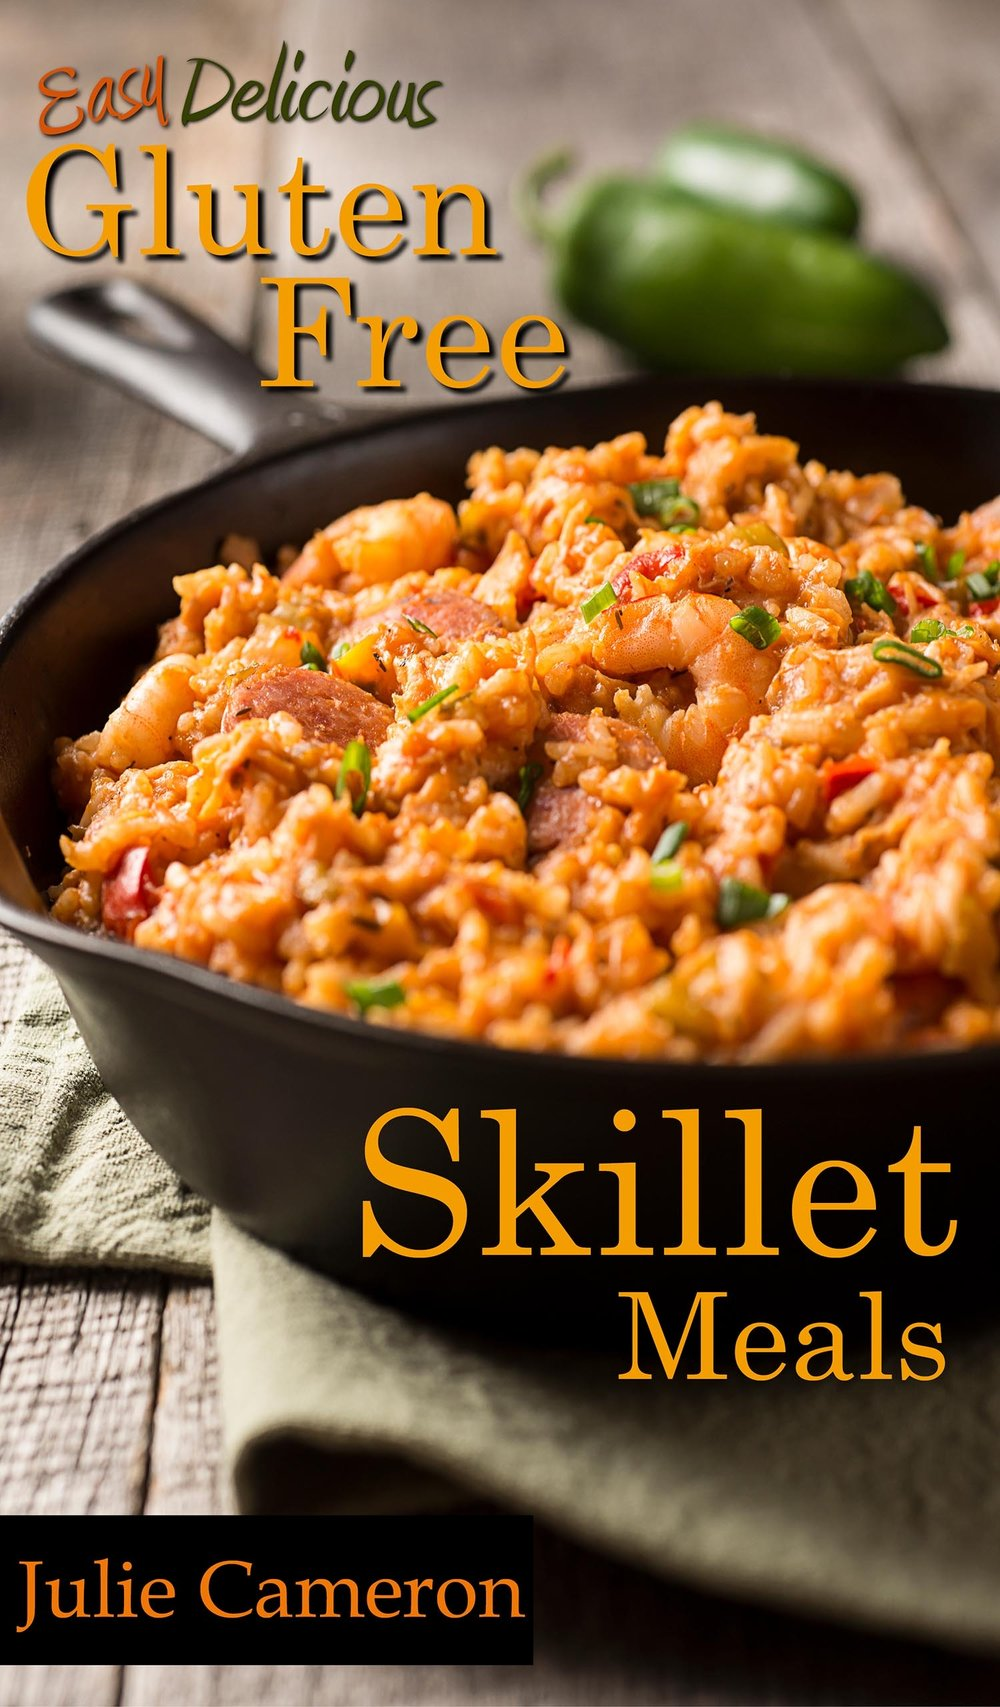 Easy Delicious Gluten-free Skillet meals by Julie Cameron